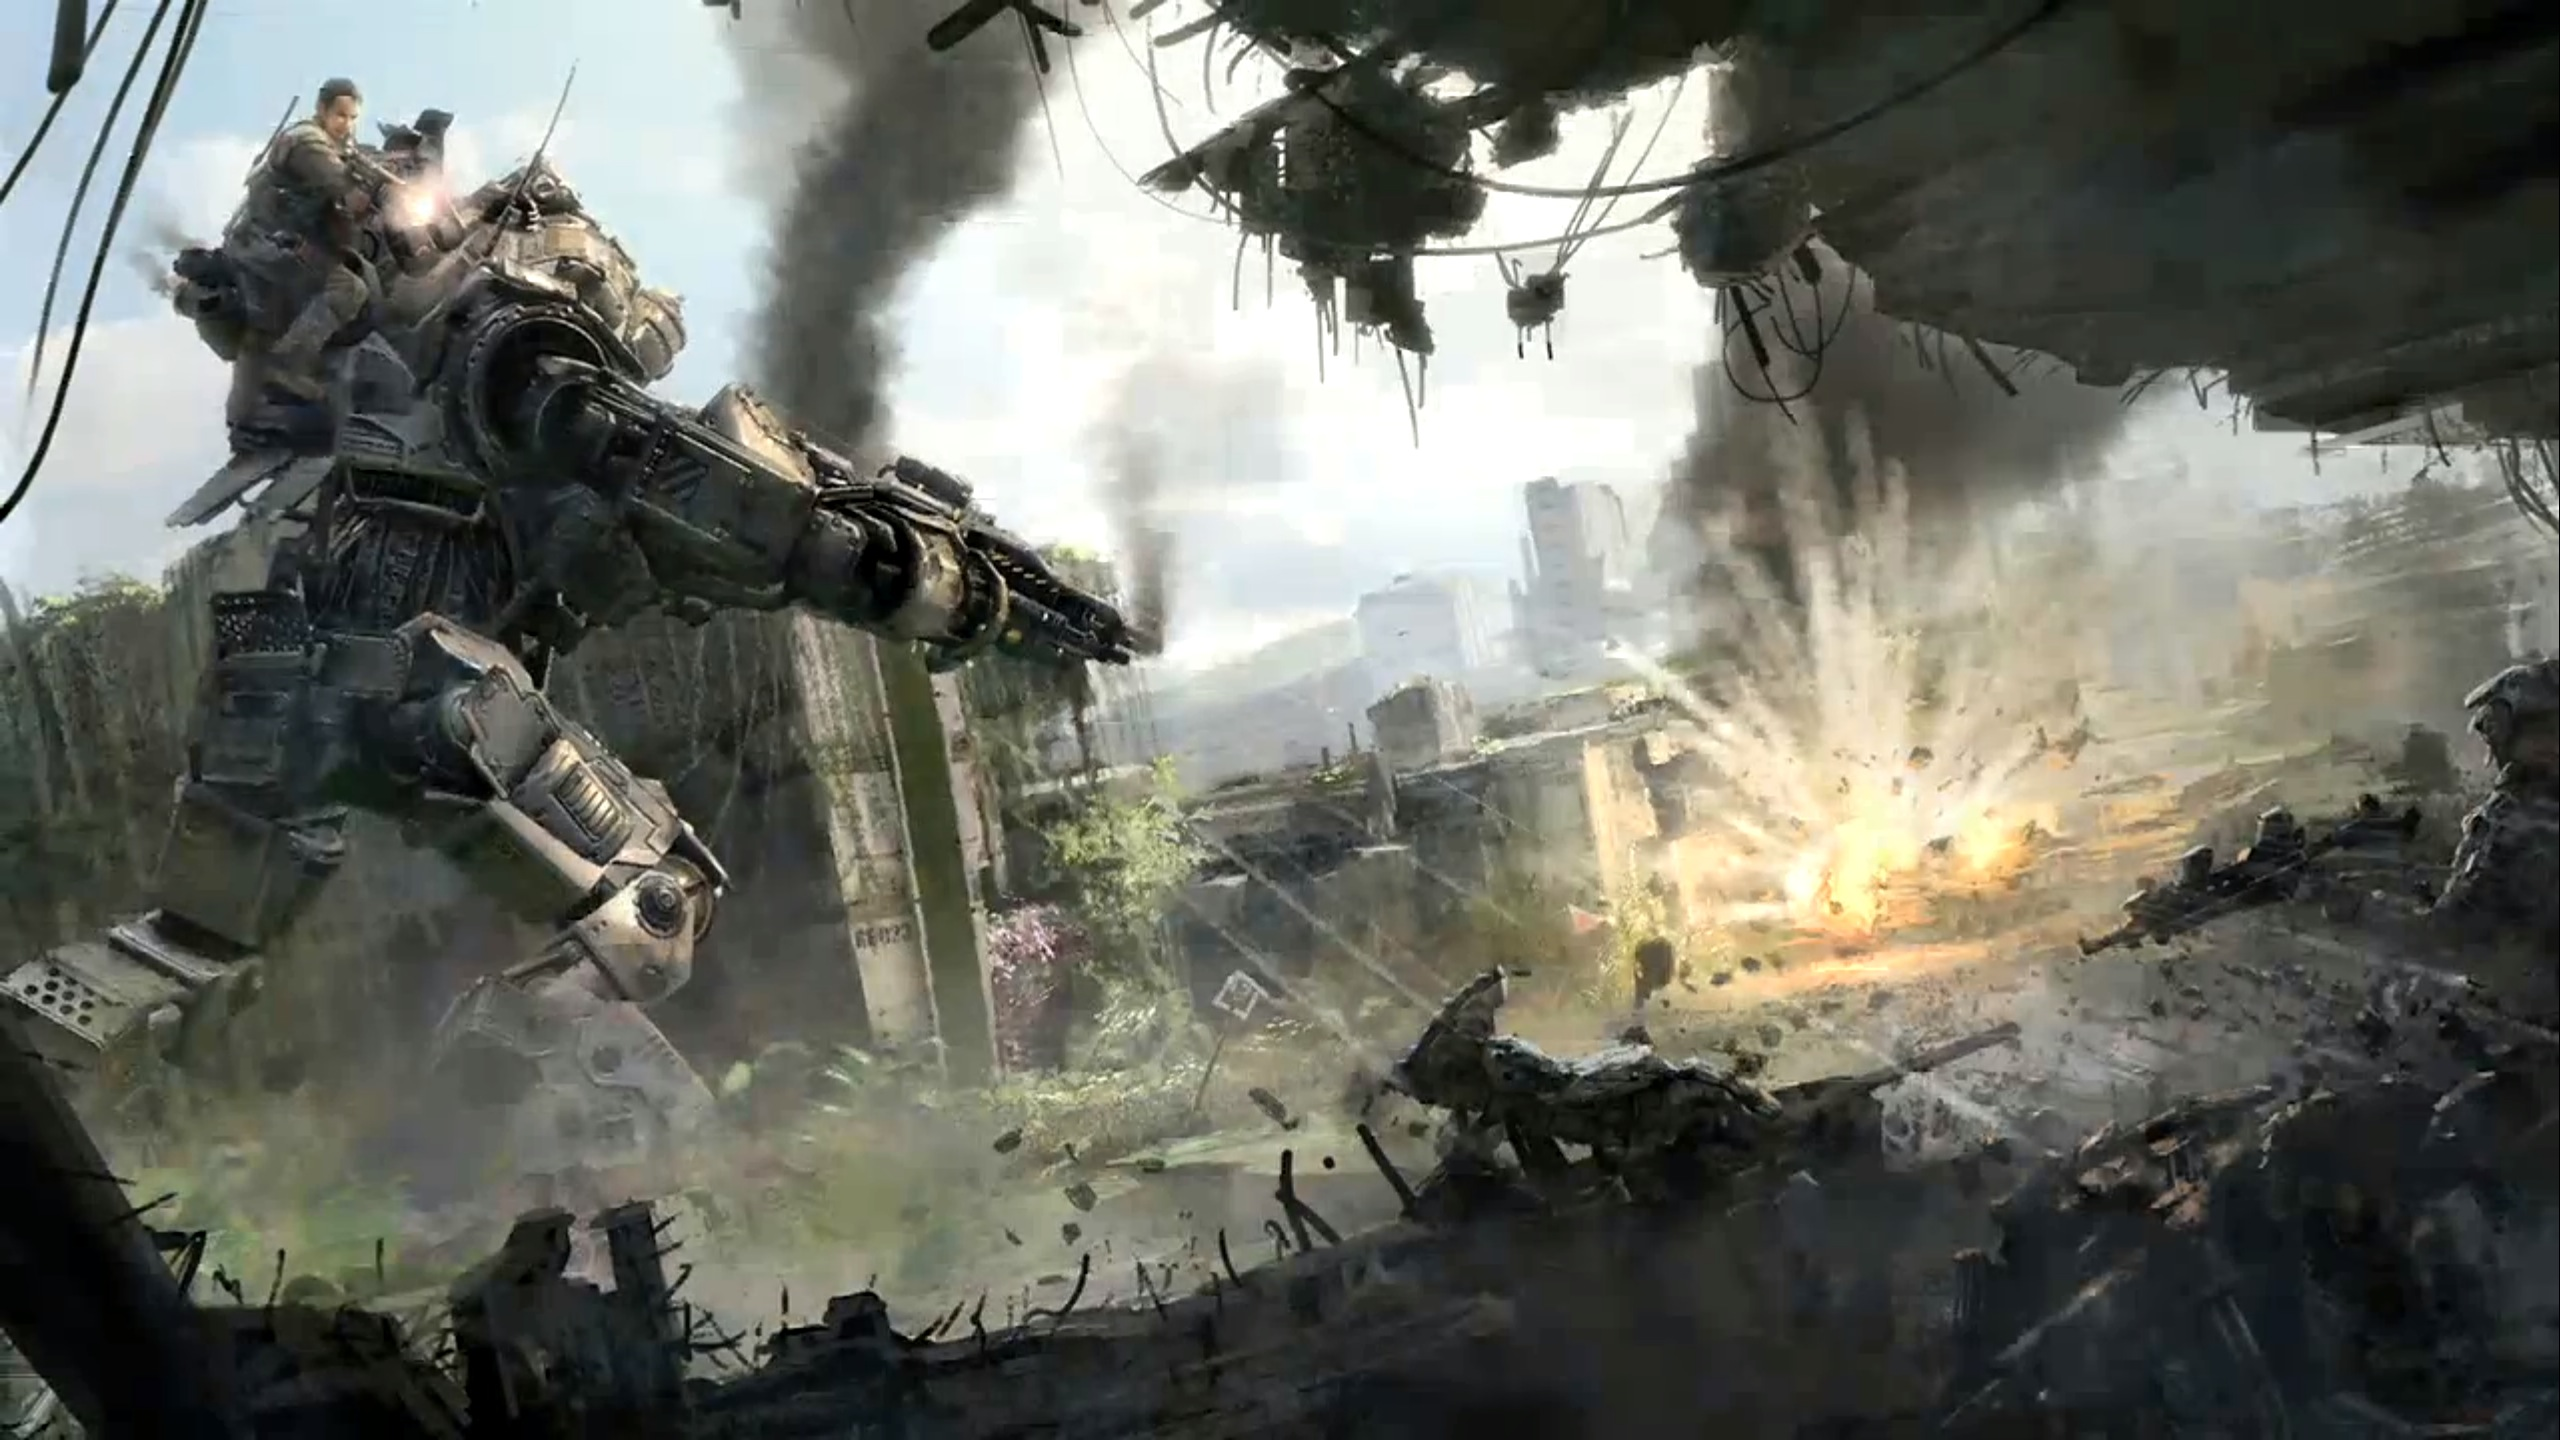 <b>Titanfall Wallpaper 2560x1440</b> - More information on ciuchy